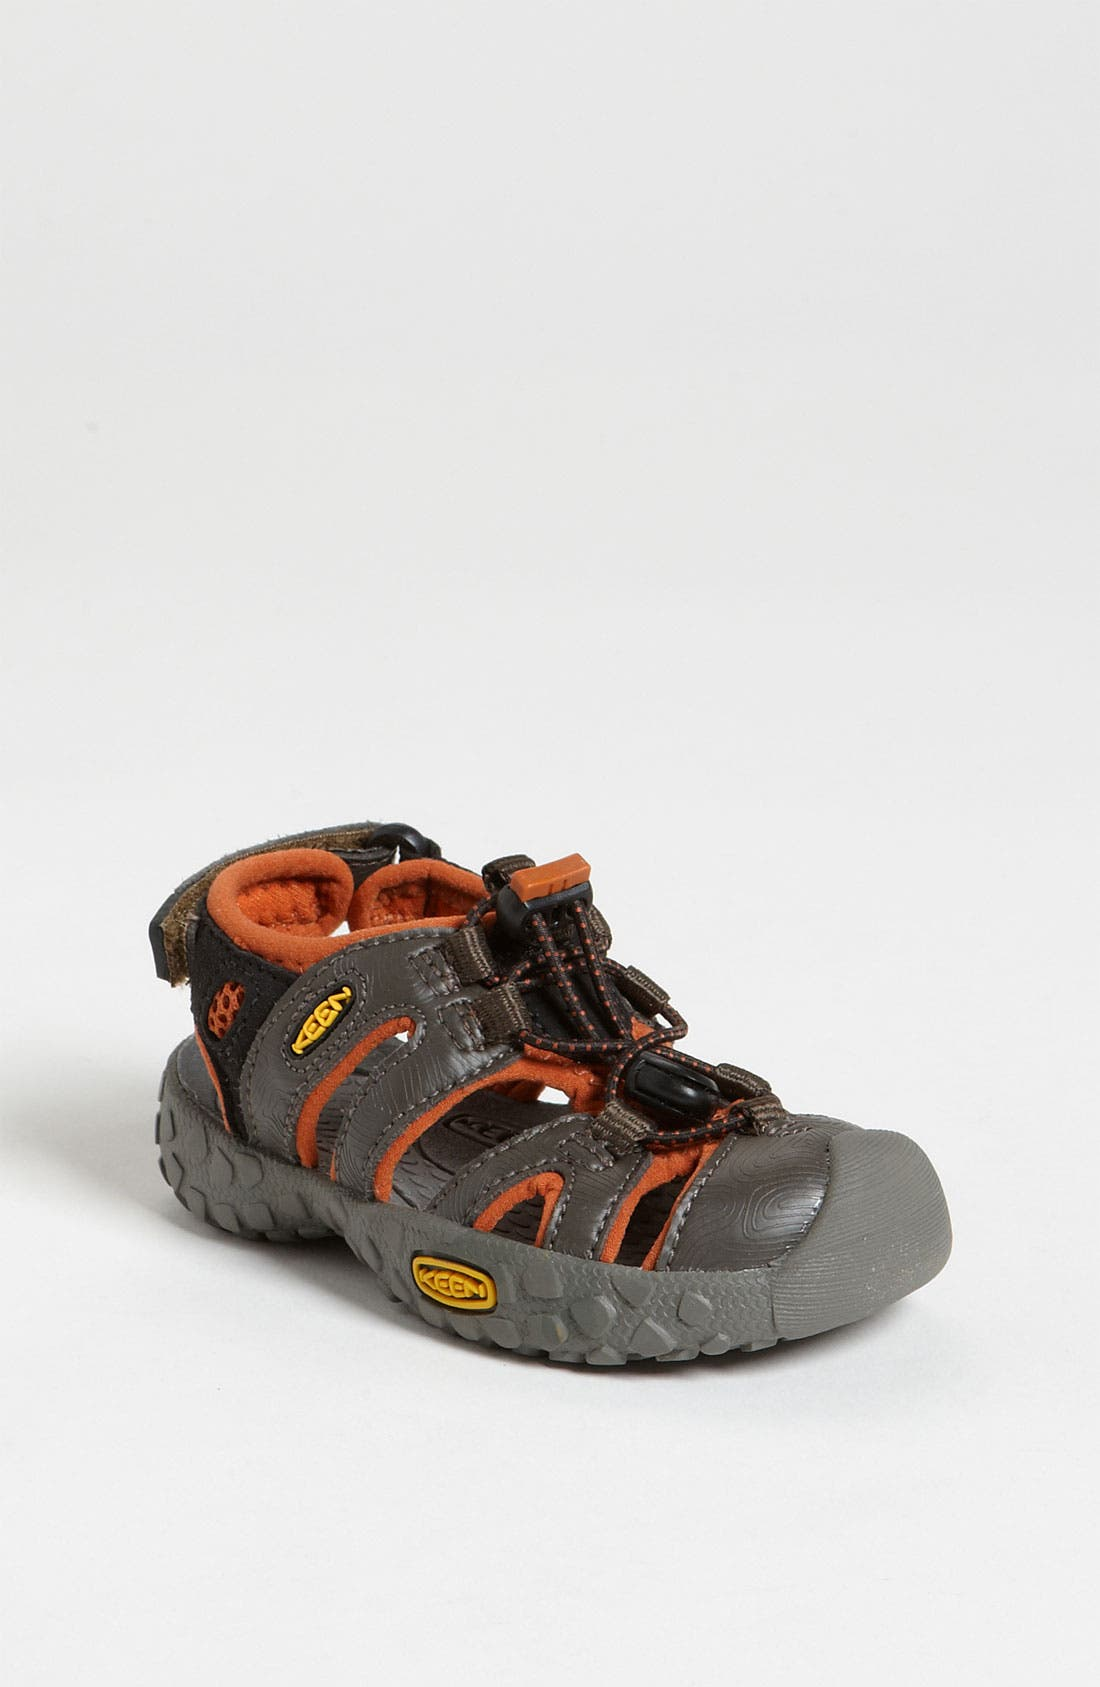 Alternate Image 1 Selected - Keen 'Kupa' Sandal (Baby & Walker)